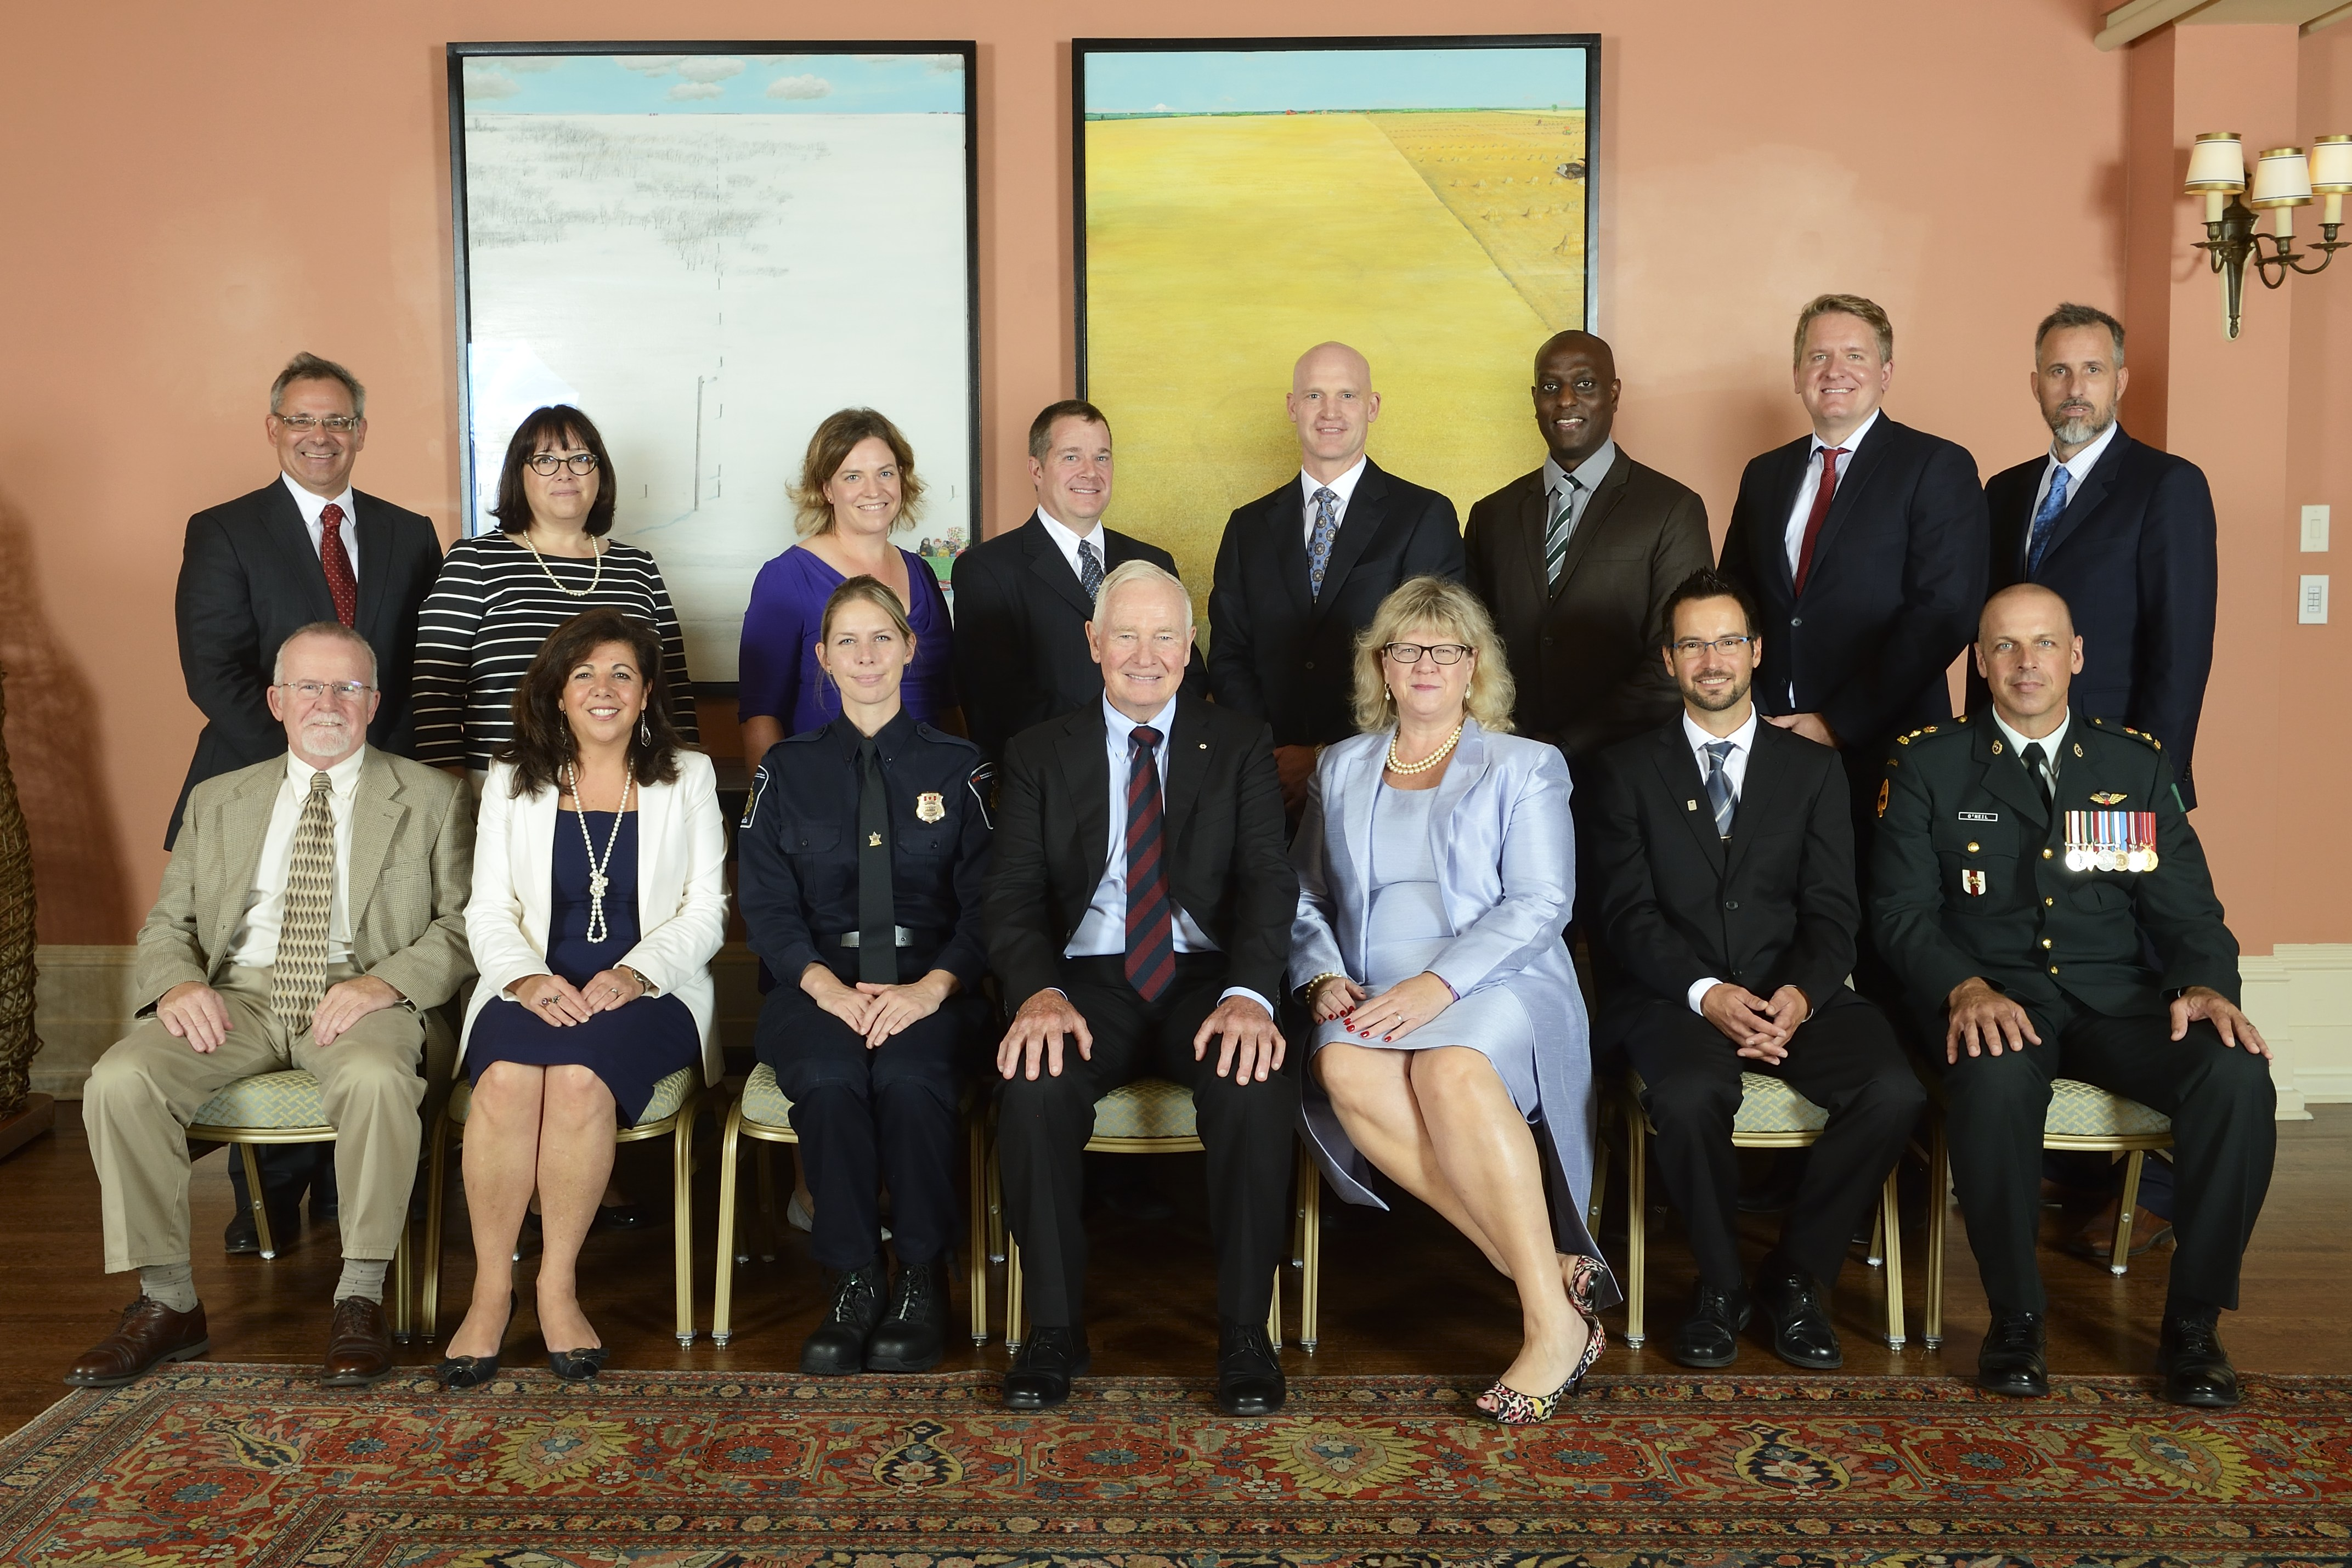 A photo of Martin Gagnon sitting with Janice Charette, Clerk of the Privy Council, His Excellency the Right Honourable David Johnston, Governor General of Canada, and the interdepartmental Ebola Response Team.